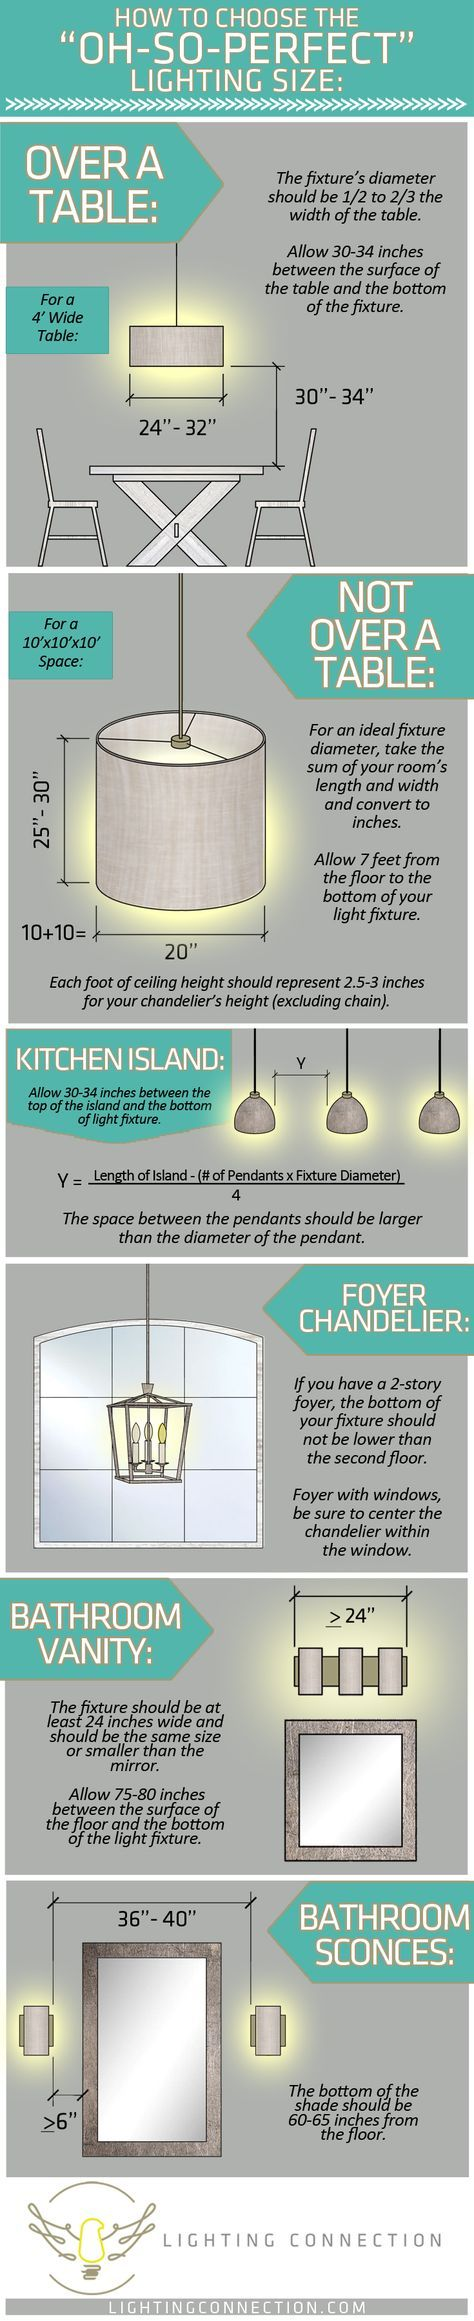 lighting guide kitchen island recessed chandelier pendant fixture ceiling lightingconnection fixtures depot dimensions modern height interior remodeling lights layout sizing